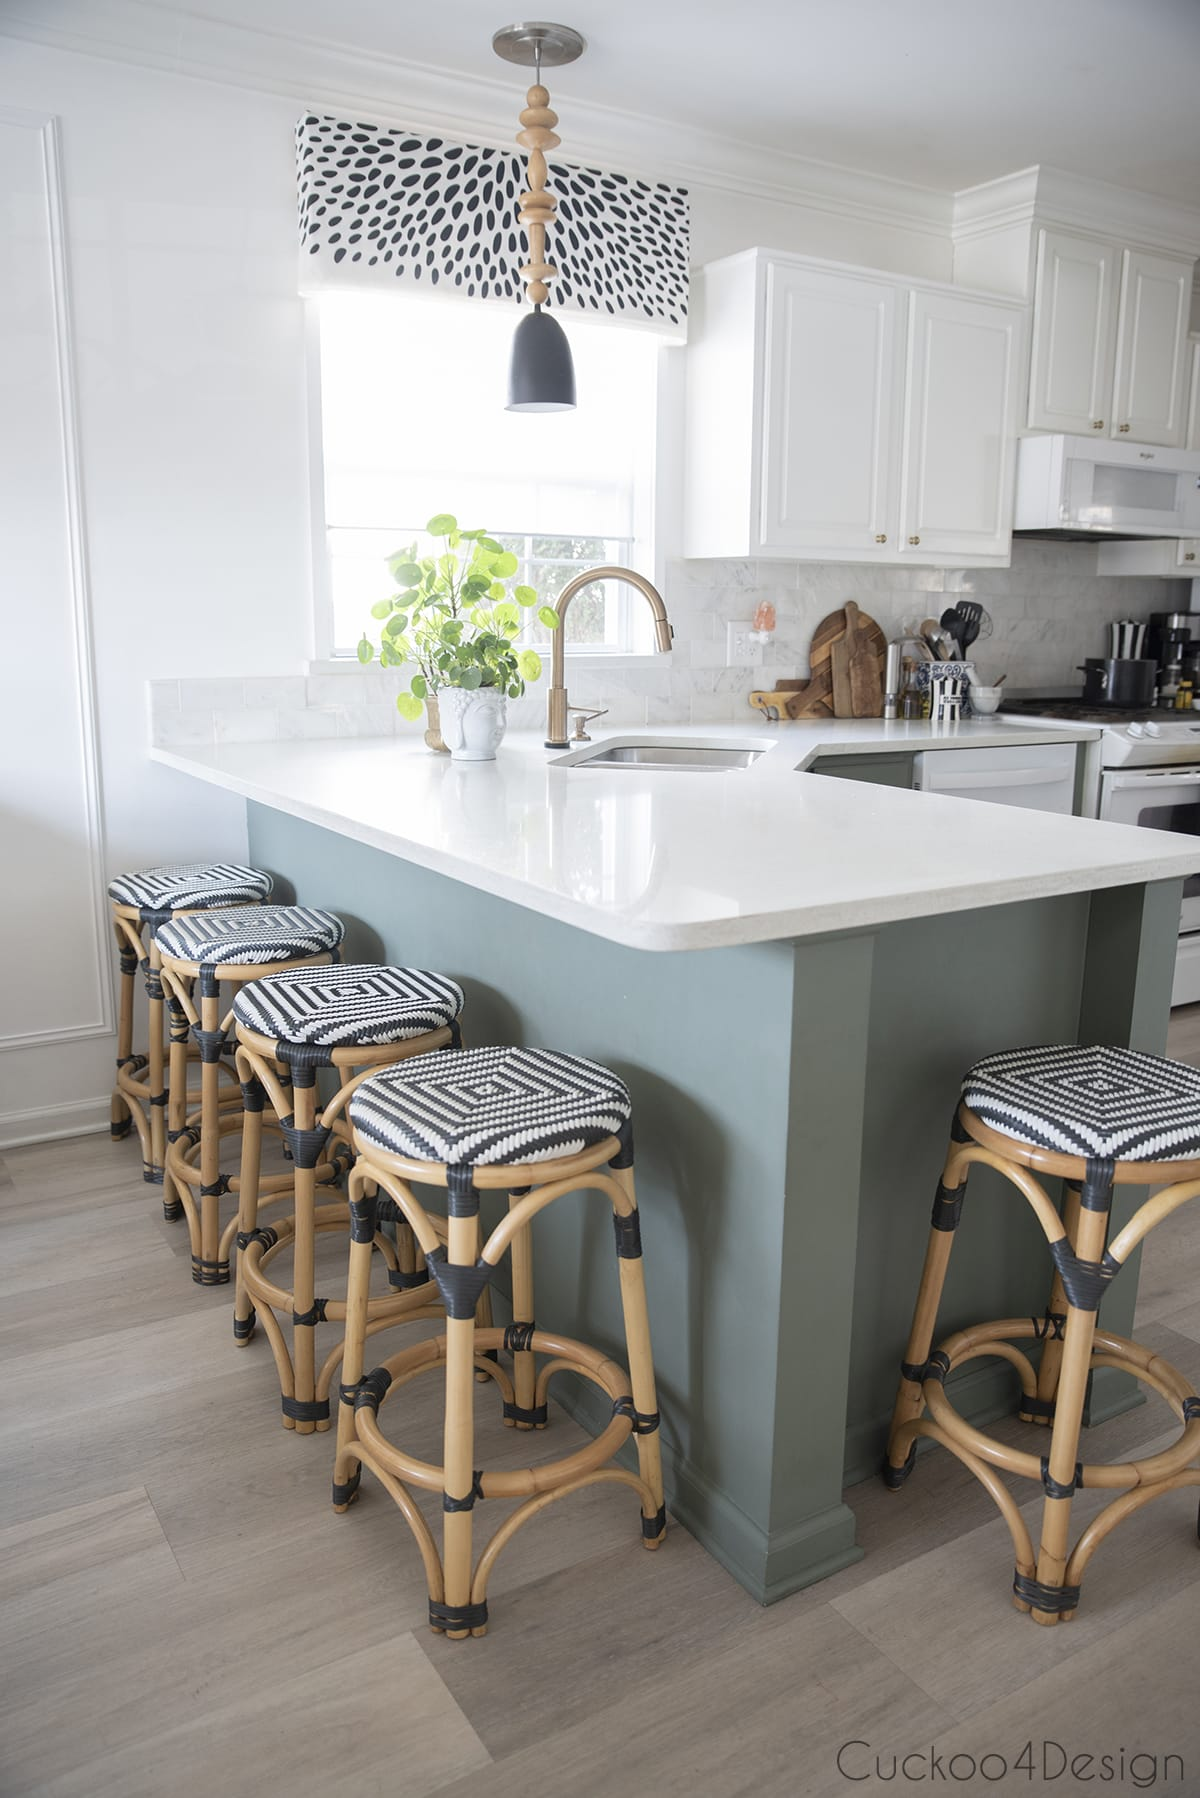 gren and white kitchen with pilea plants